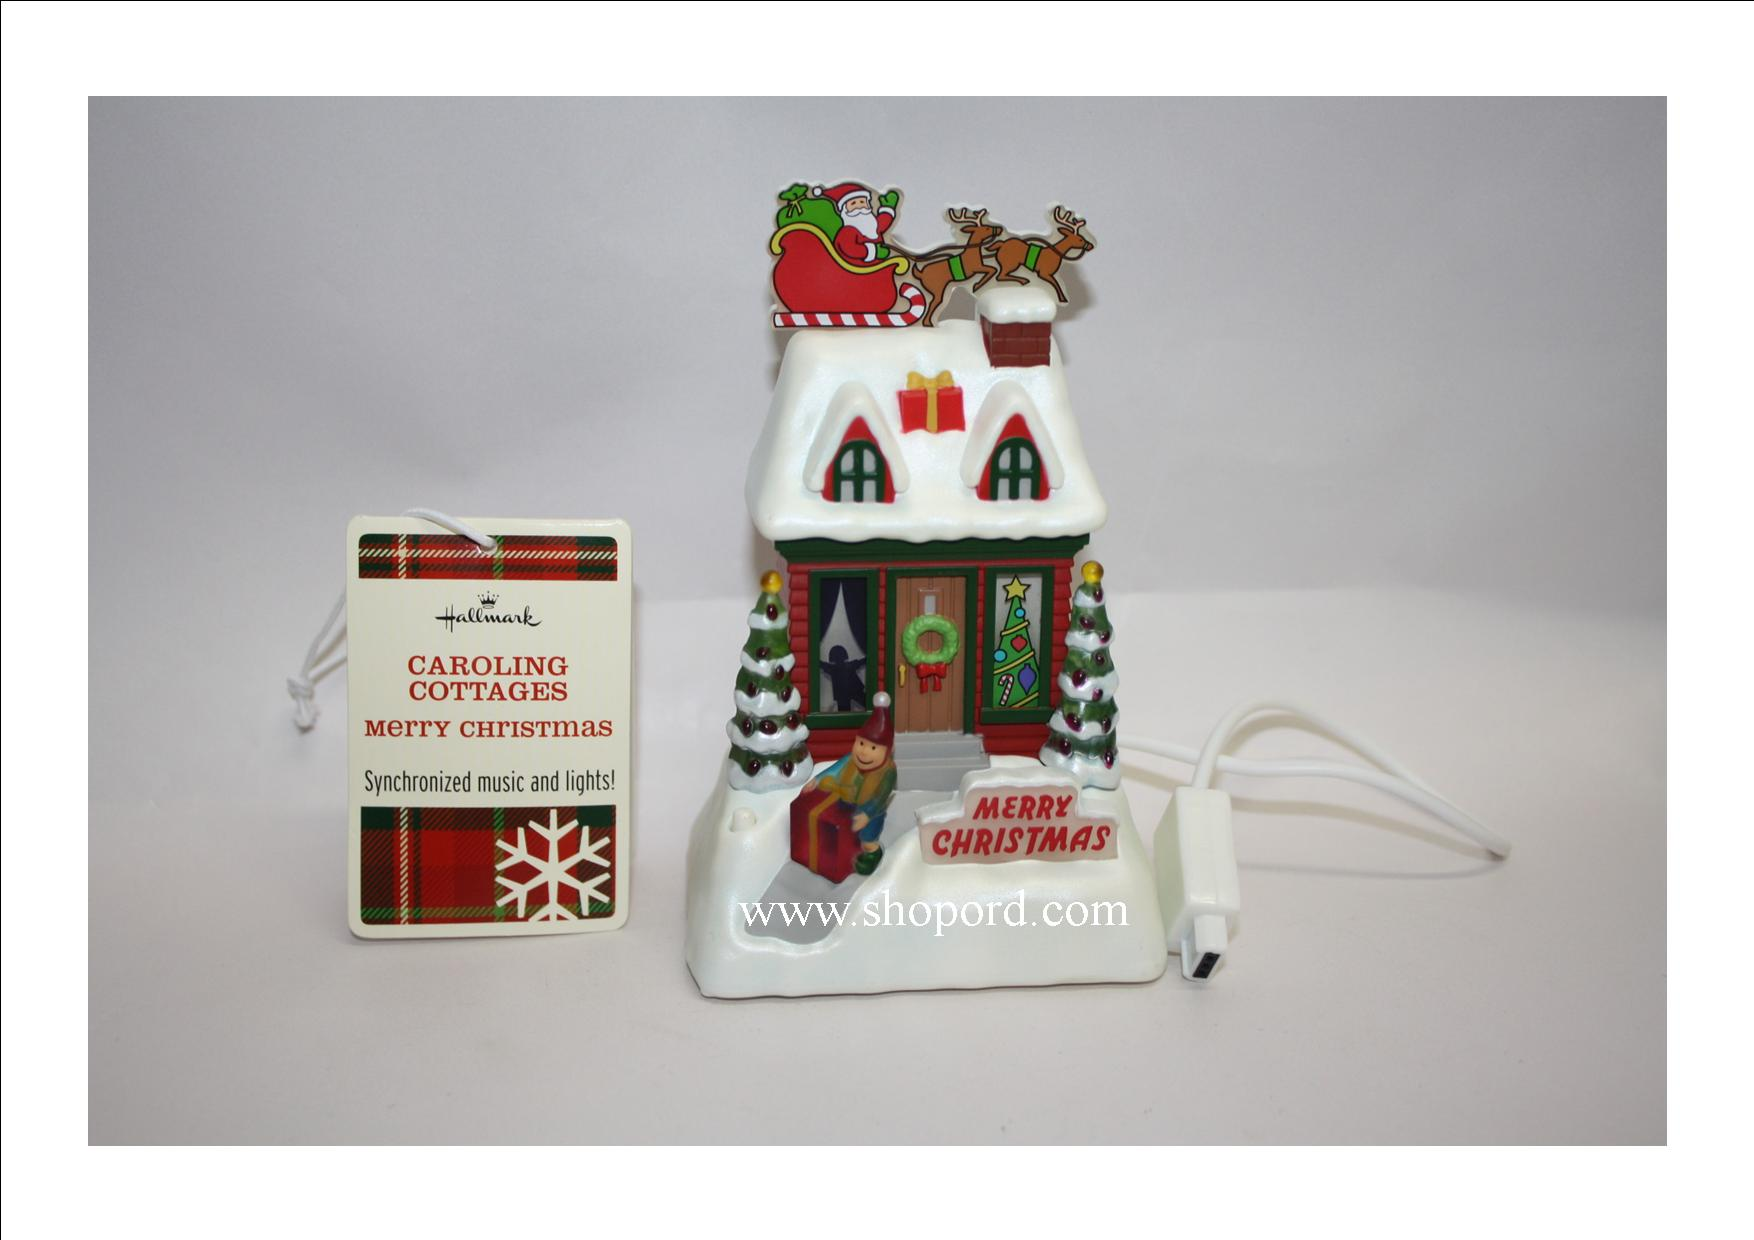 Hallmark Caroling Cottages Merry Christmas XLJ6023 (With Tag)